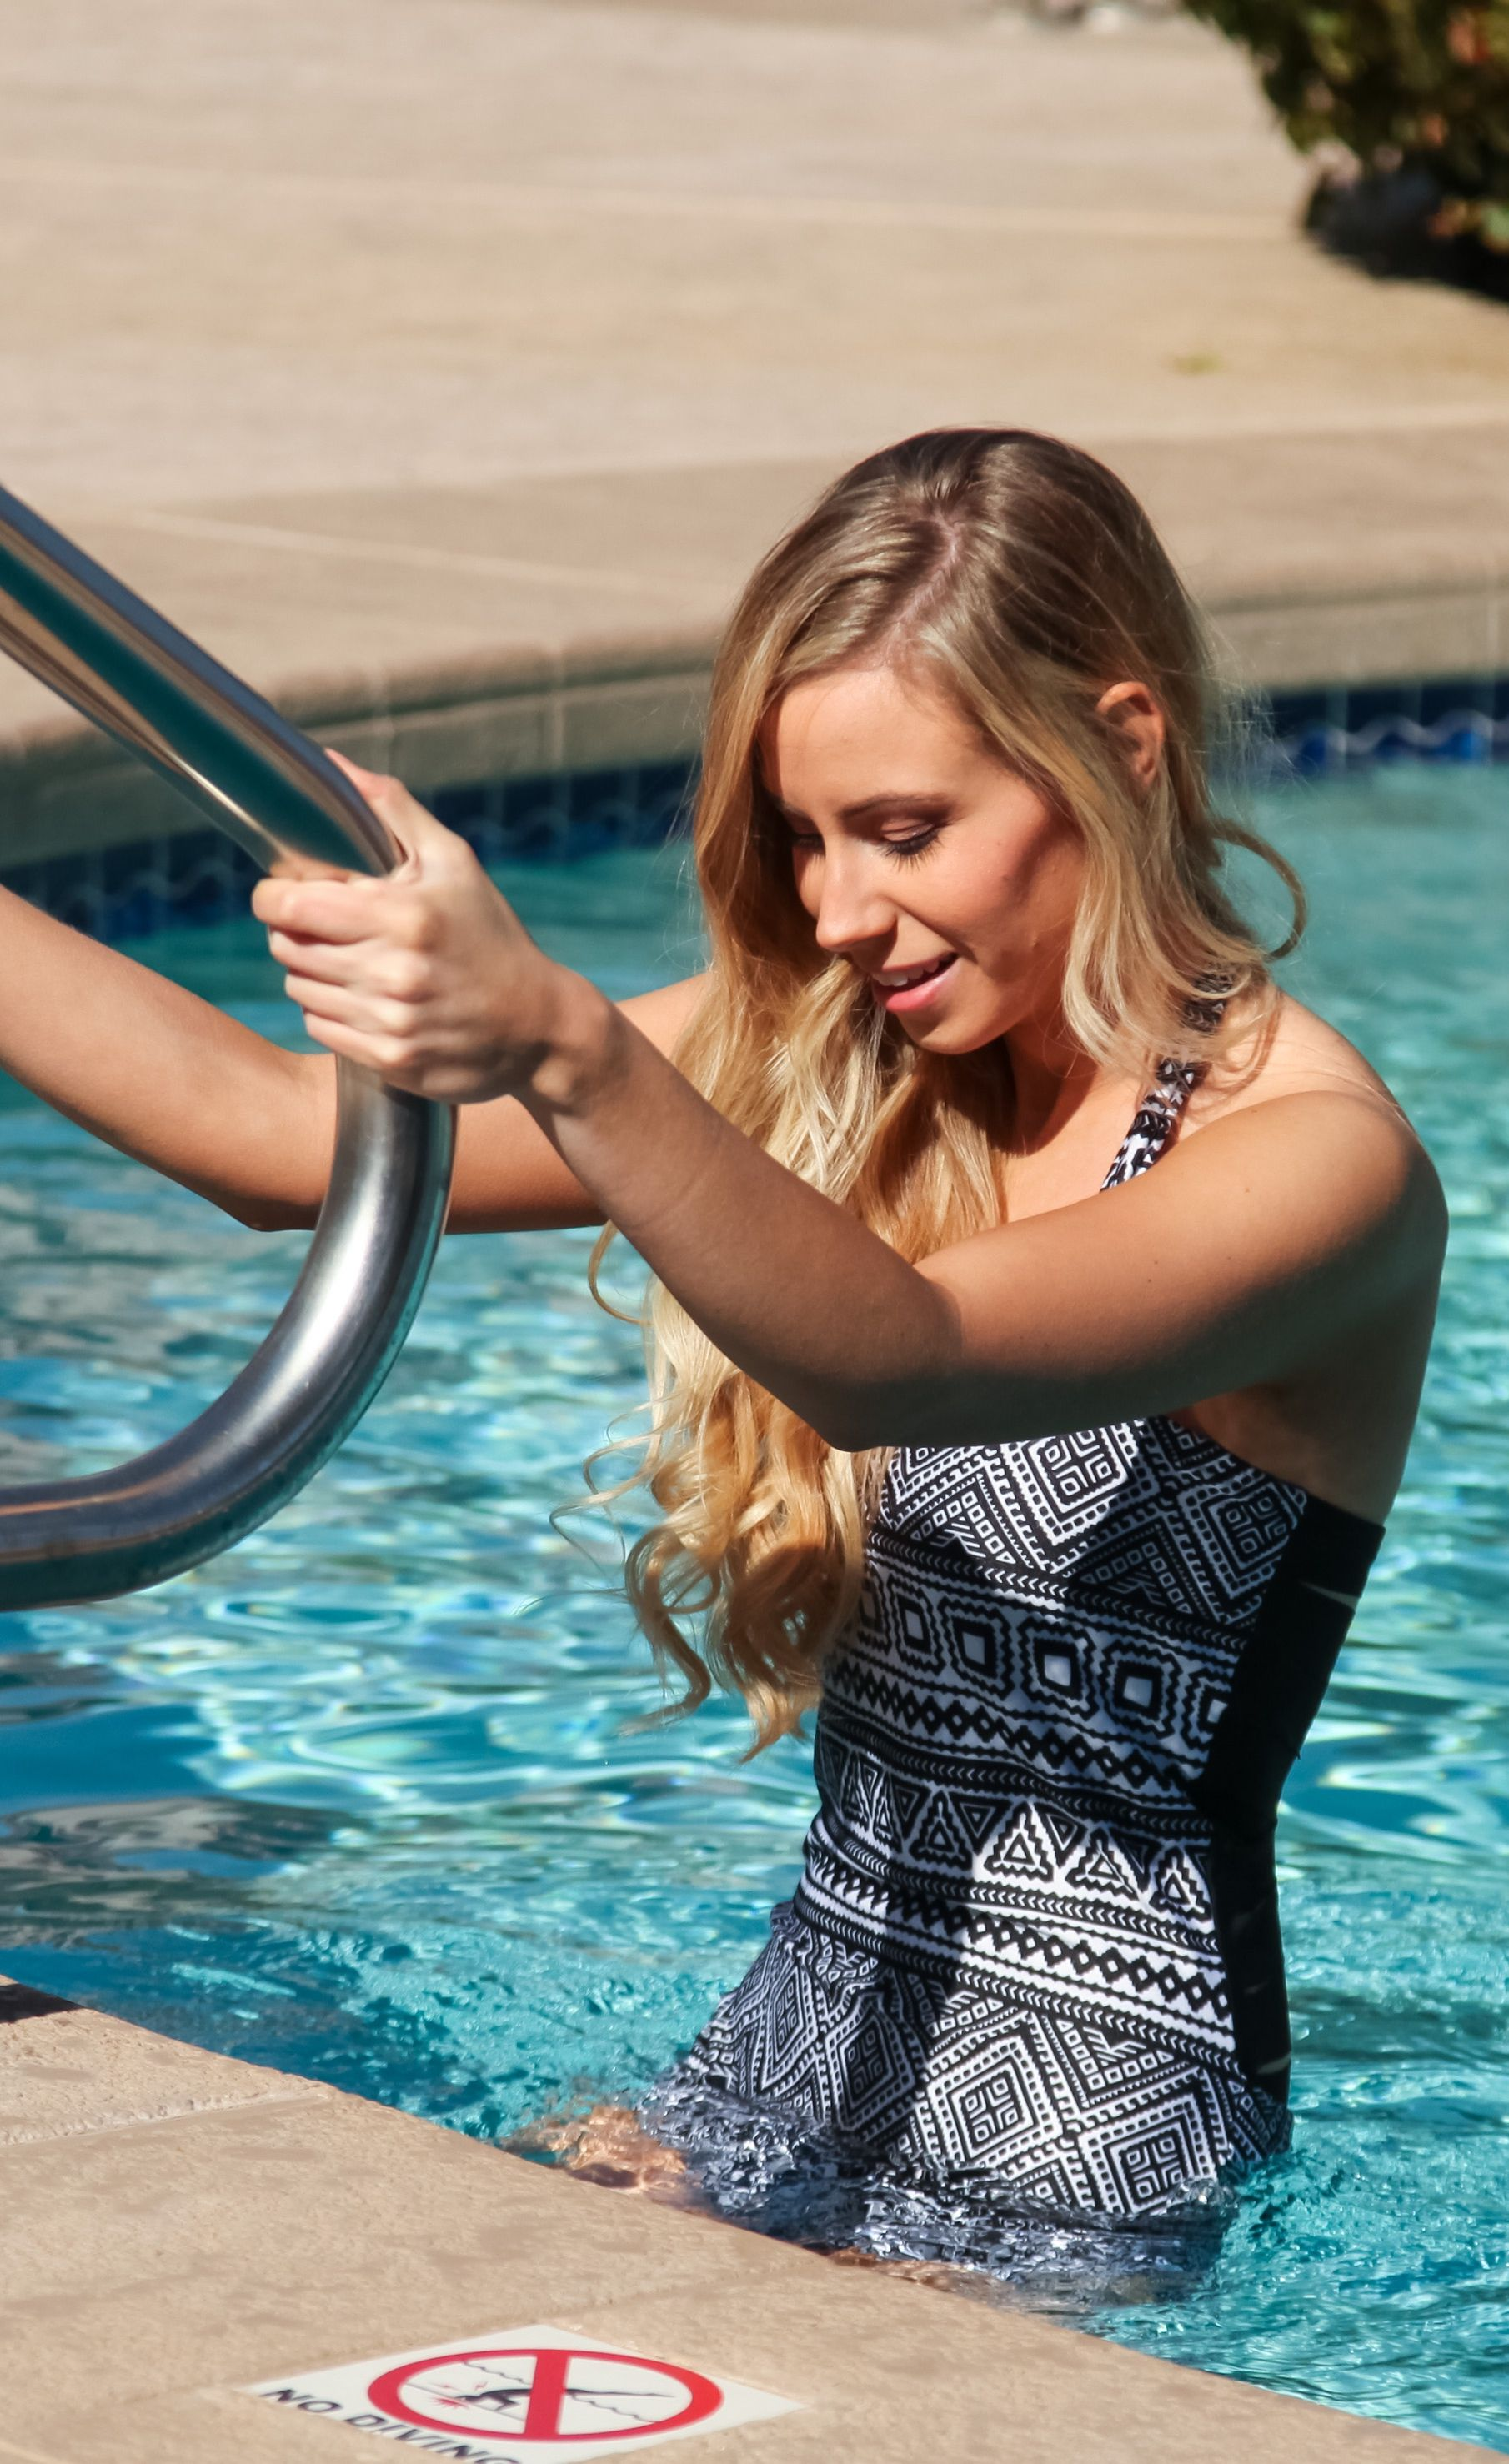 1bf9bd7f75e75 Swim proof swimwear. Modest one piece swimsuit for teens. Beautiful prints  and shapes to flatter all body types.